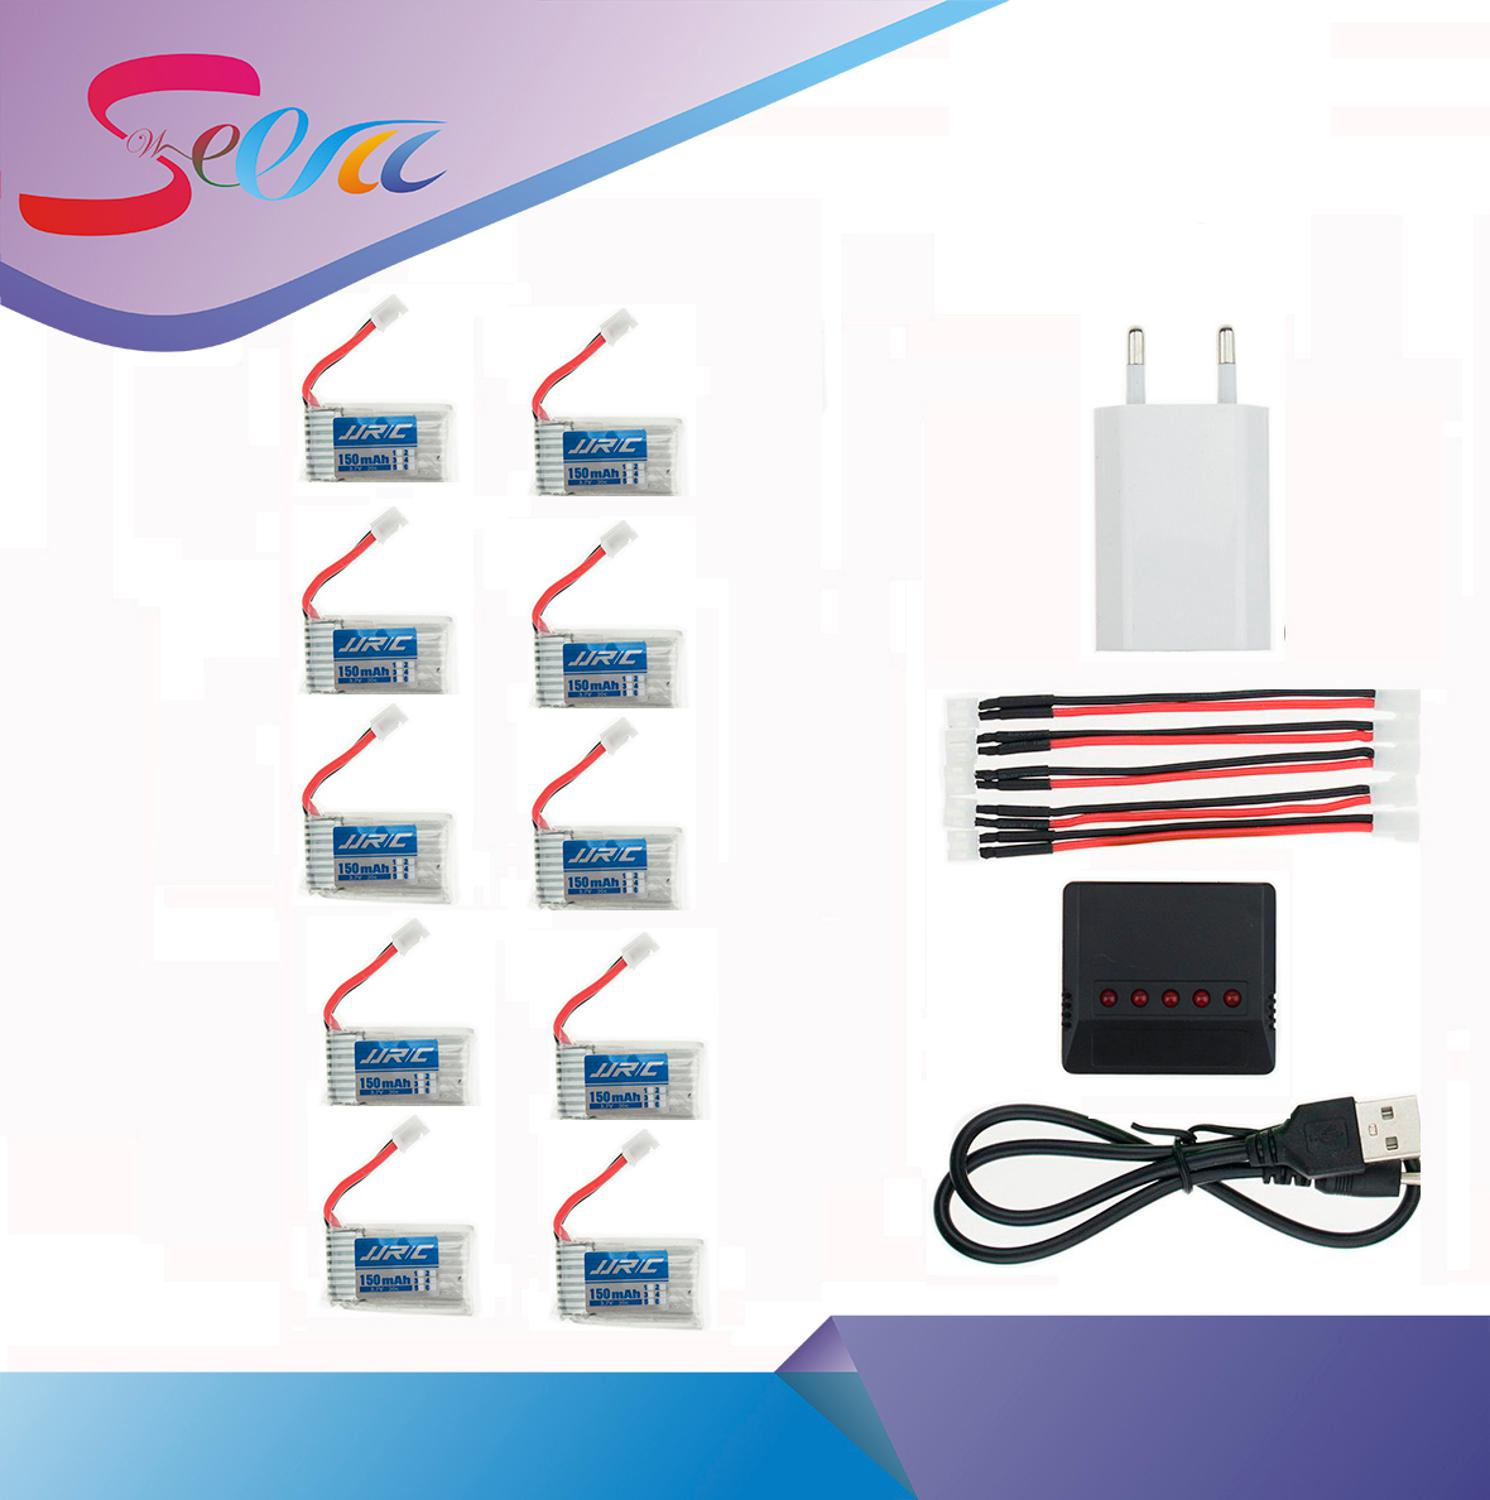 10pcs 3 7V 150mah Lipo Battery With 5 in 1 Black Balance Charger Plug Set For